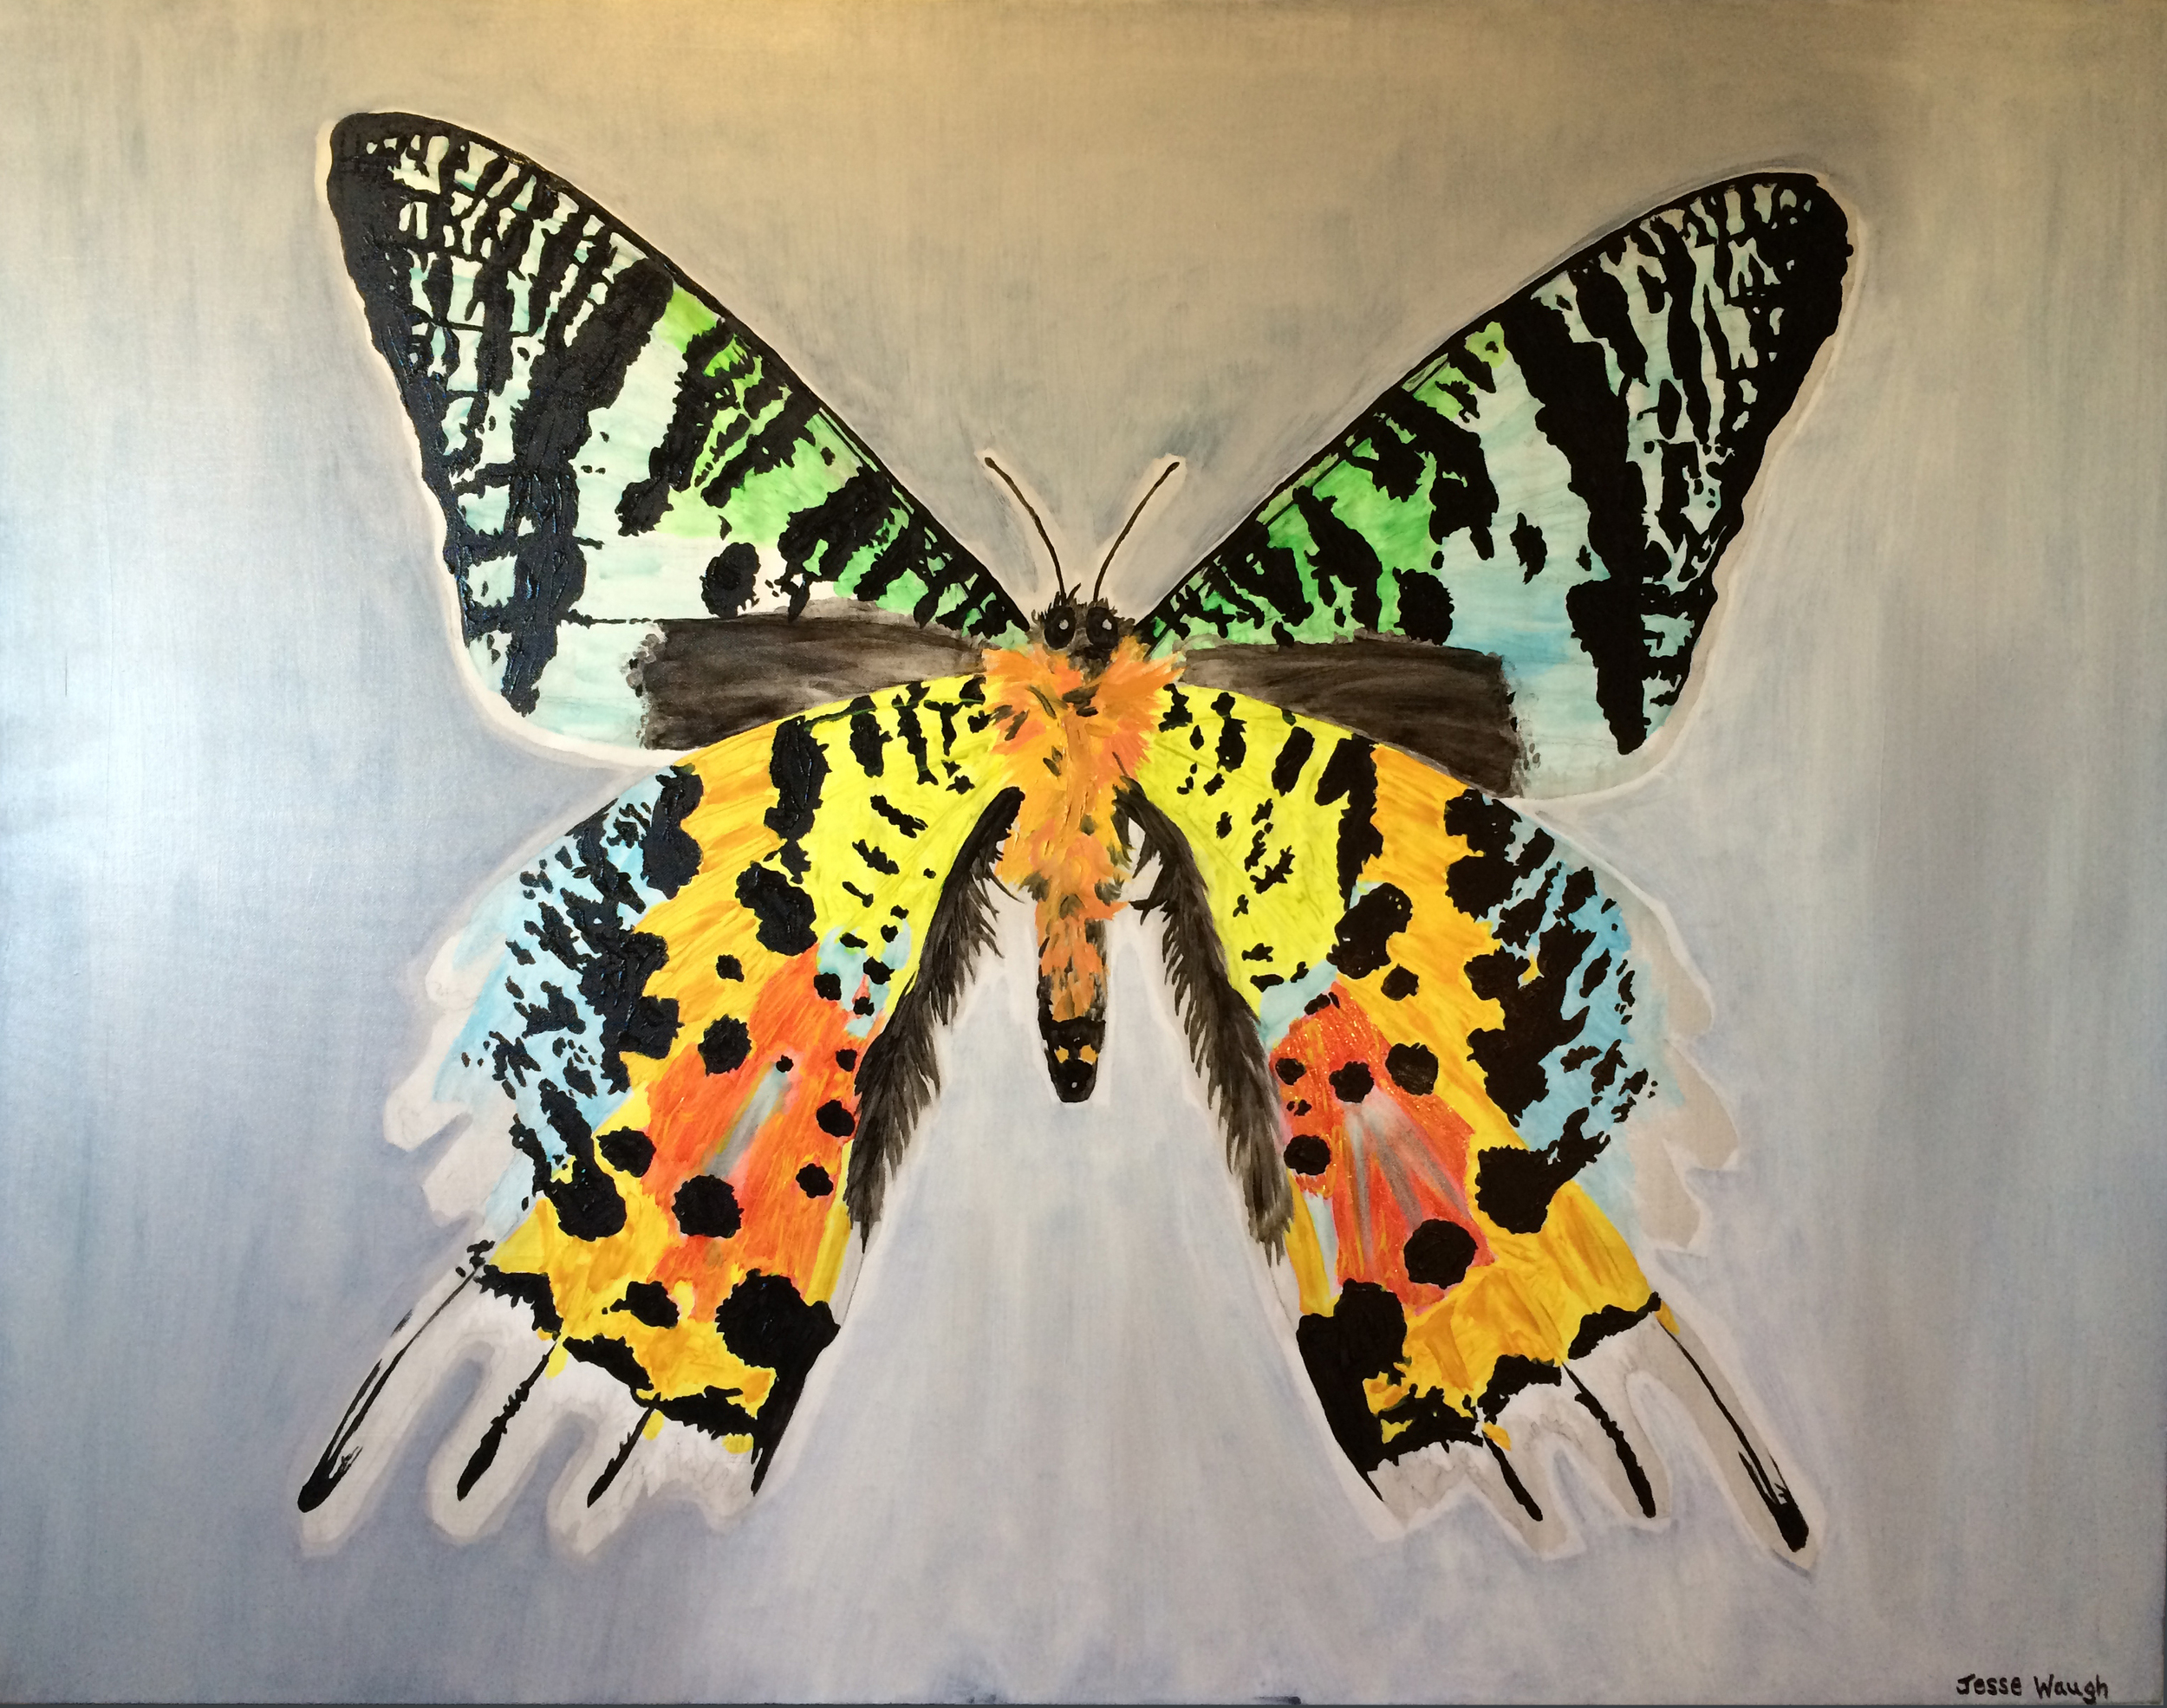 Jesse Waugh   Sunset Moth   2013 Oil on canvas